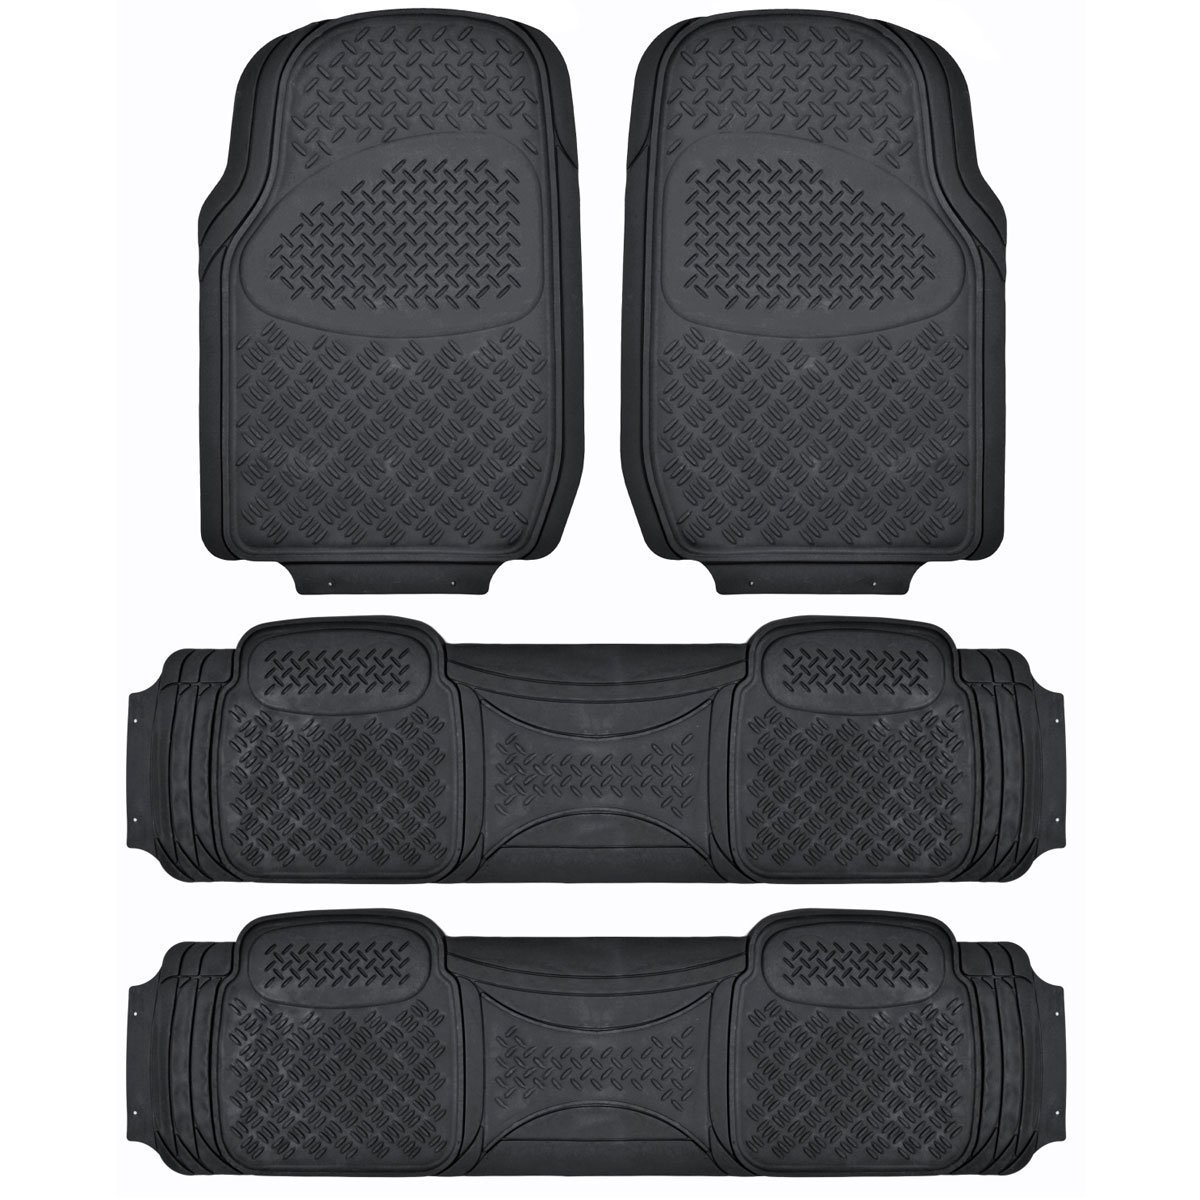 MT-713-711-GR/_AMHD 4 Pieces 3 Rows Full Set- All Weather Trimmable Mat Gray BDK Heavy Duty VAN SUV Rubber Floor Mats